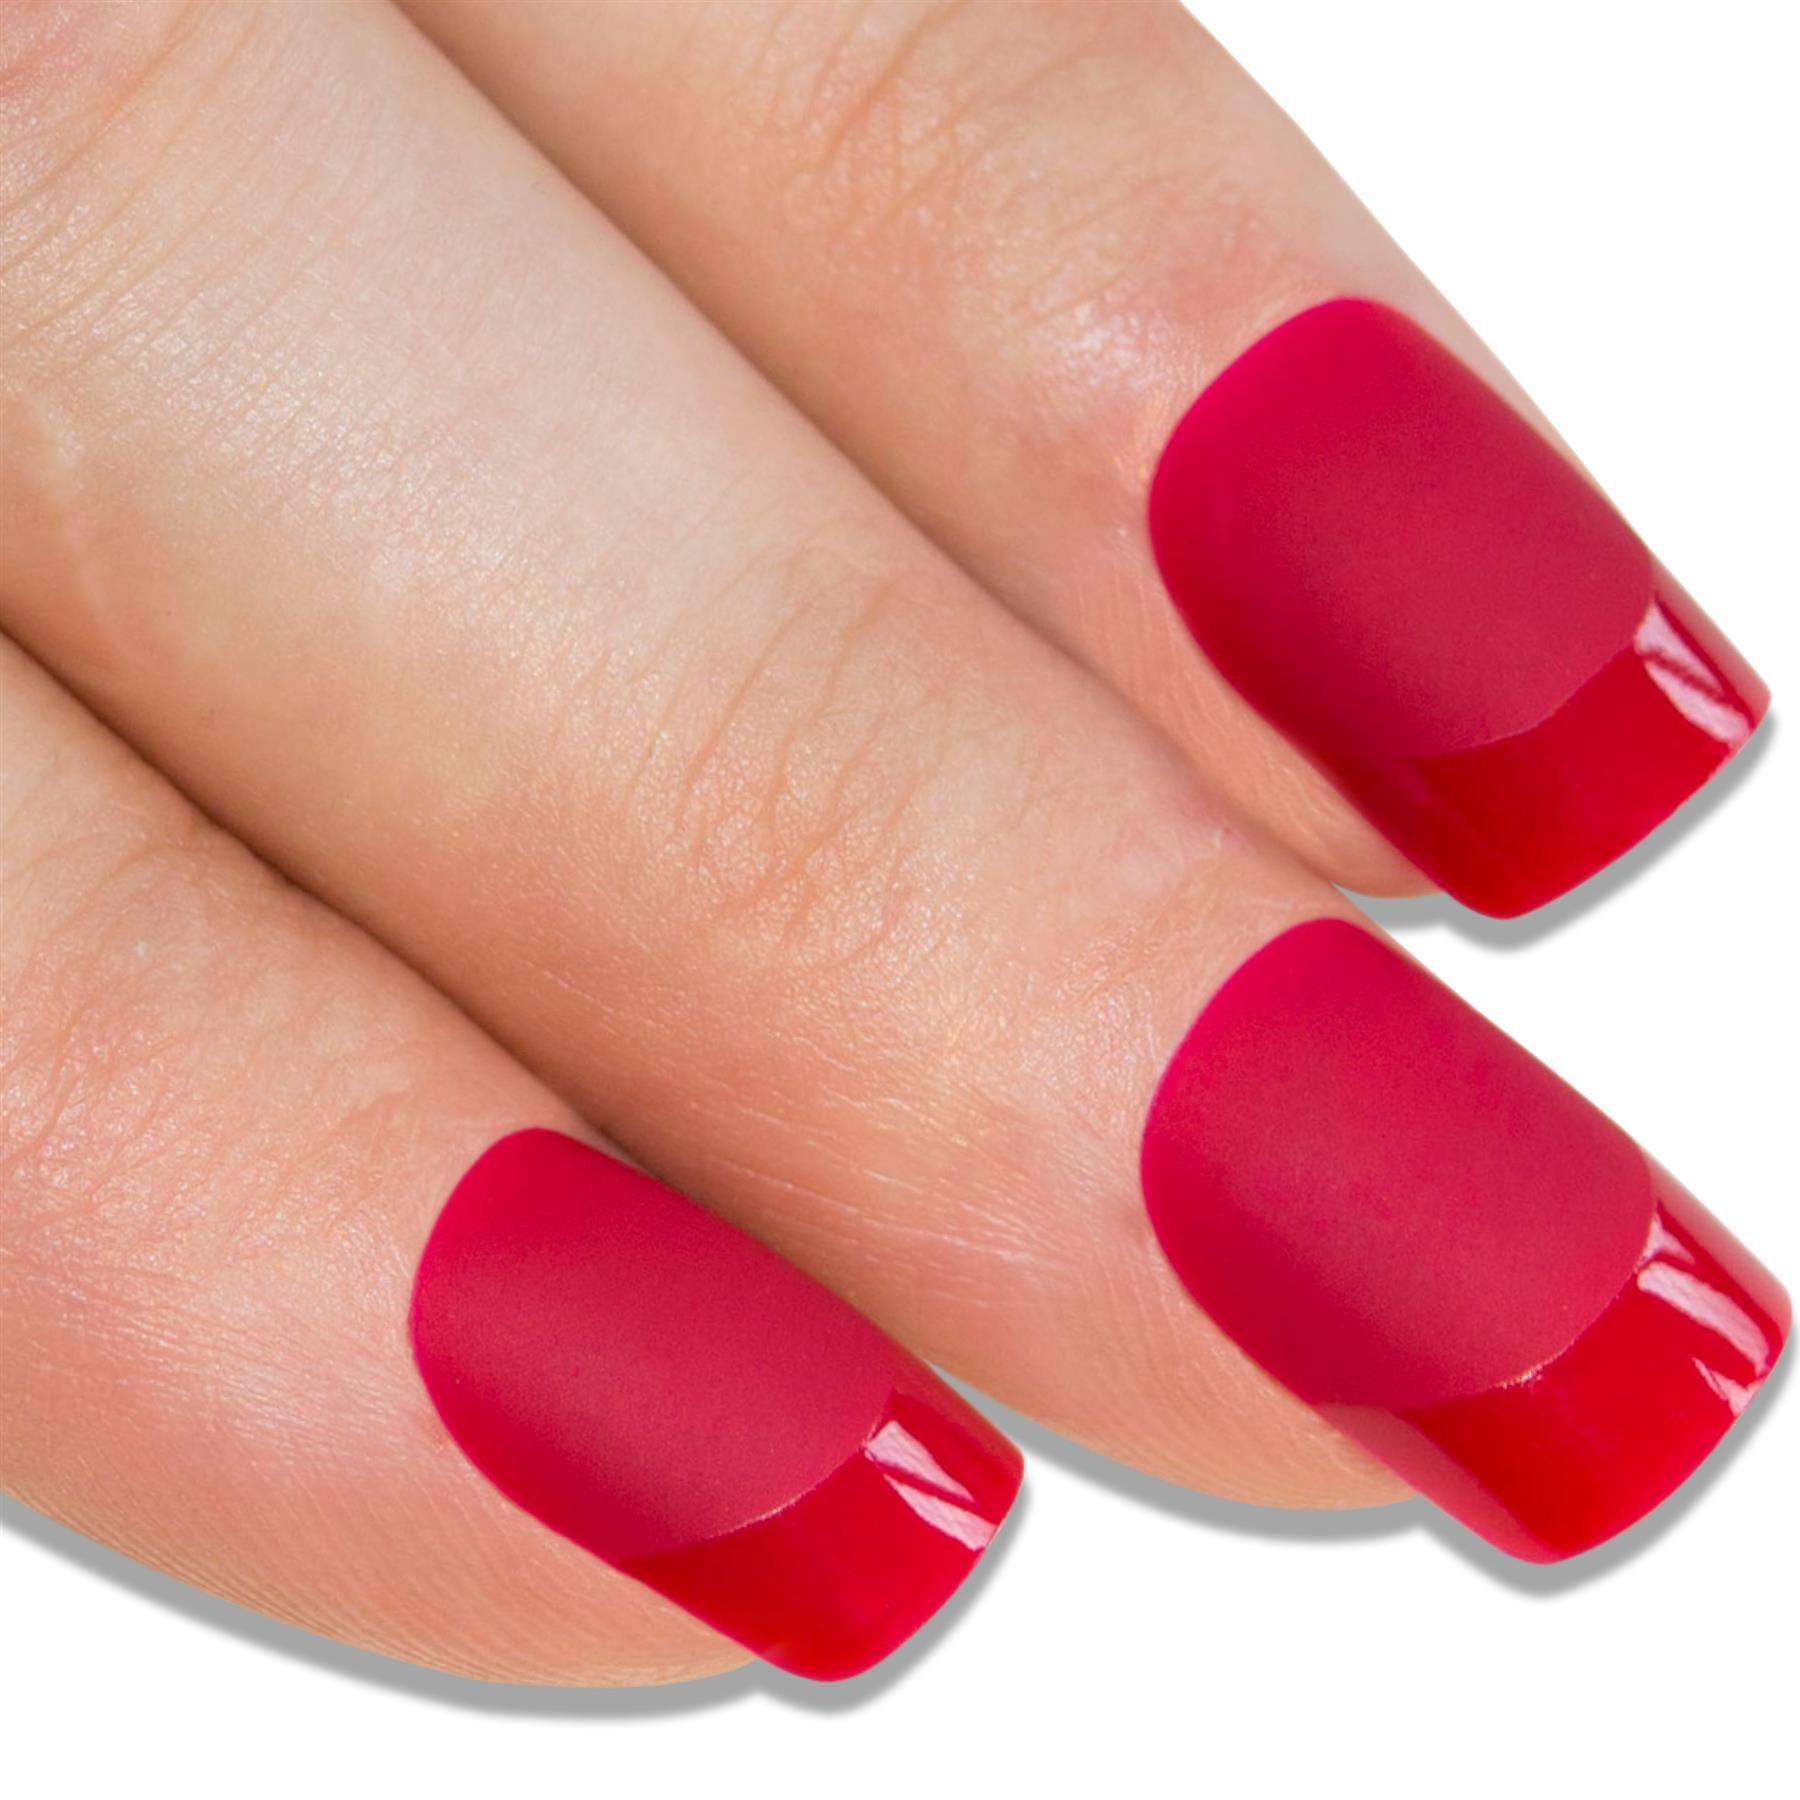 False Nails by Bling Art Red Matte French Manicure Fake Medium Tips with Glue, Nail Care by Bling Art